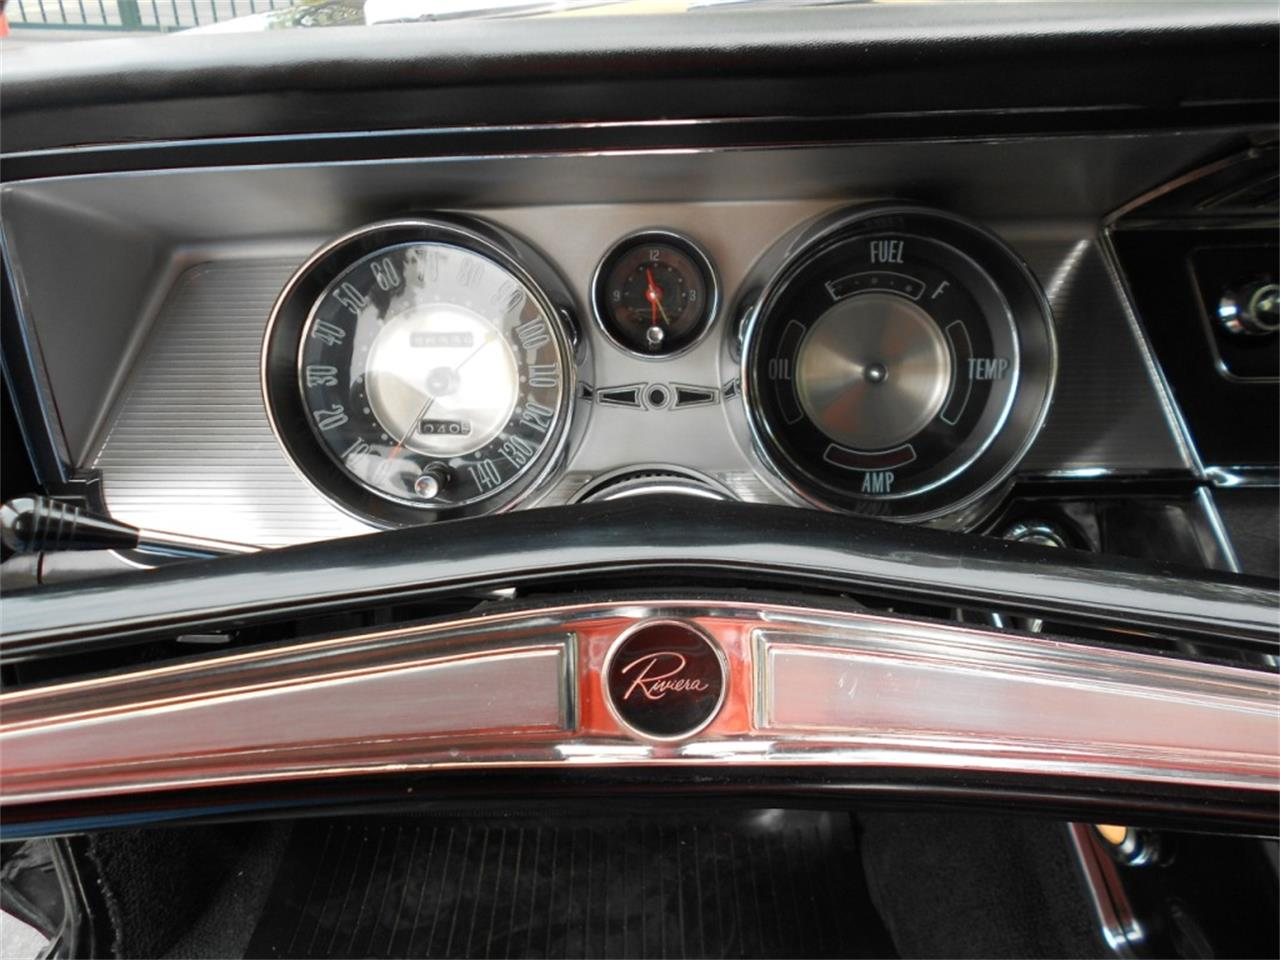 Large Picture of 1963 Buick Riviera - $25,000.00 - Q8L8